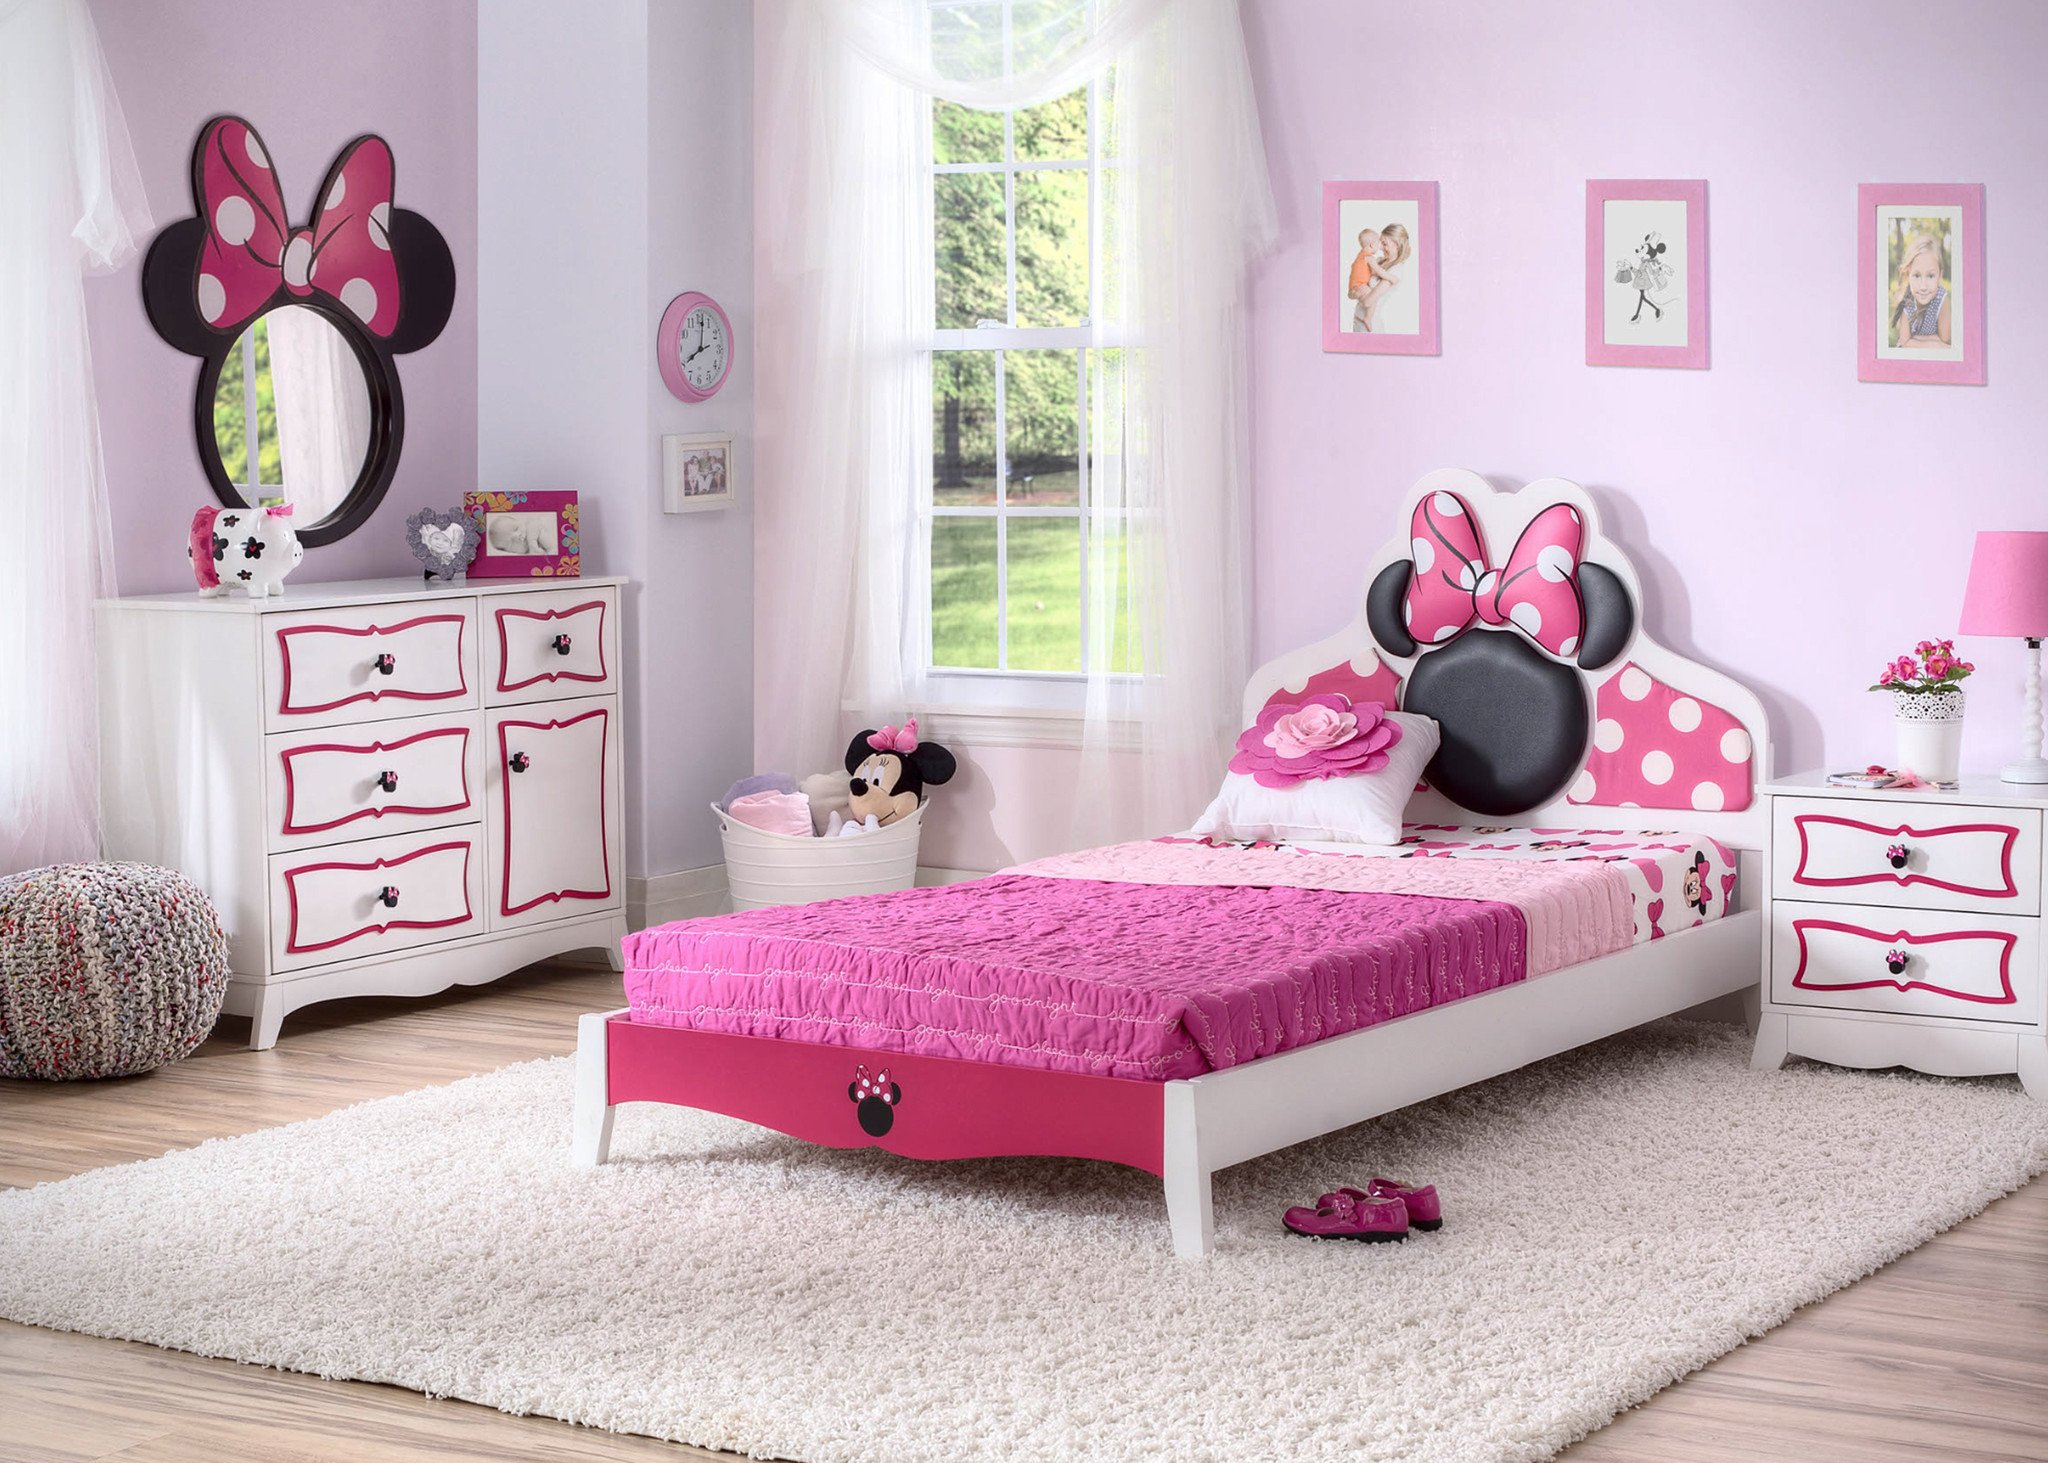 Minnie Mouse Bedroom Furniture Elegant Take A Look at these Awesome Minnie Mouse Bedroom Items